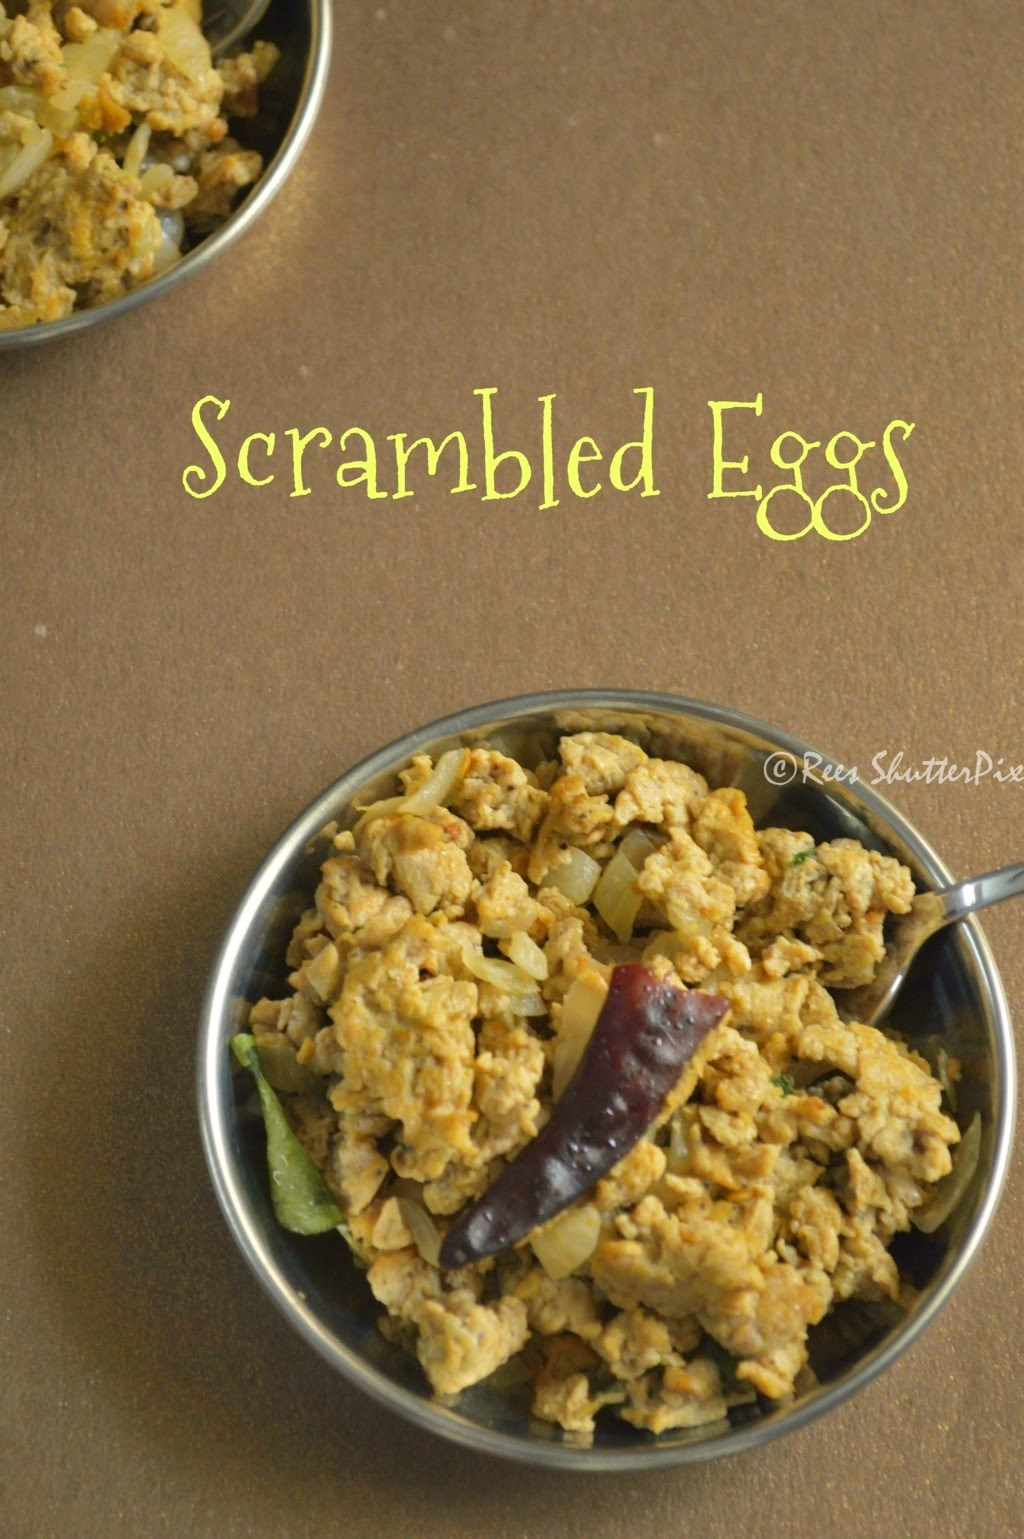 scrambled eggs recipe, spicy egg podimas recipe, egg side dish recipe, easy scrambled eggs, egg side dish, egg podimas recipe, egg recipes, egg bhurji style recipe